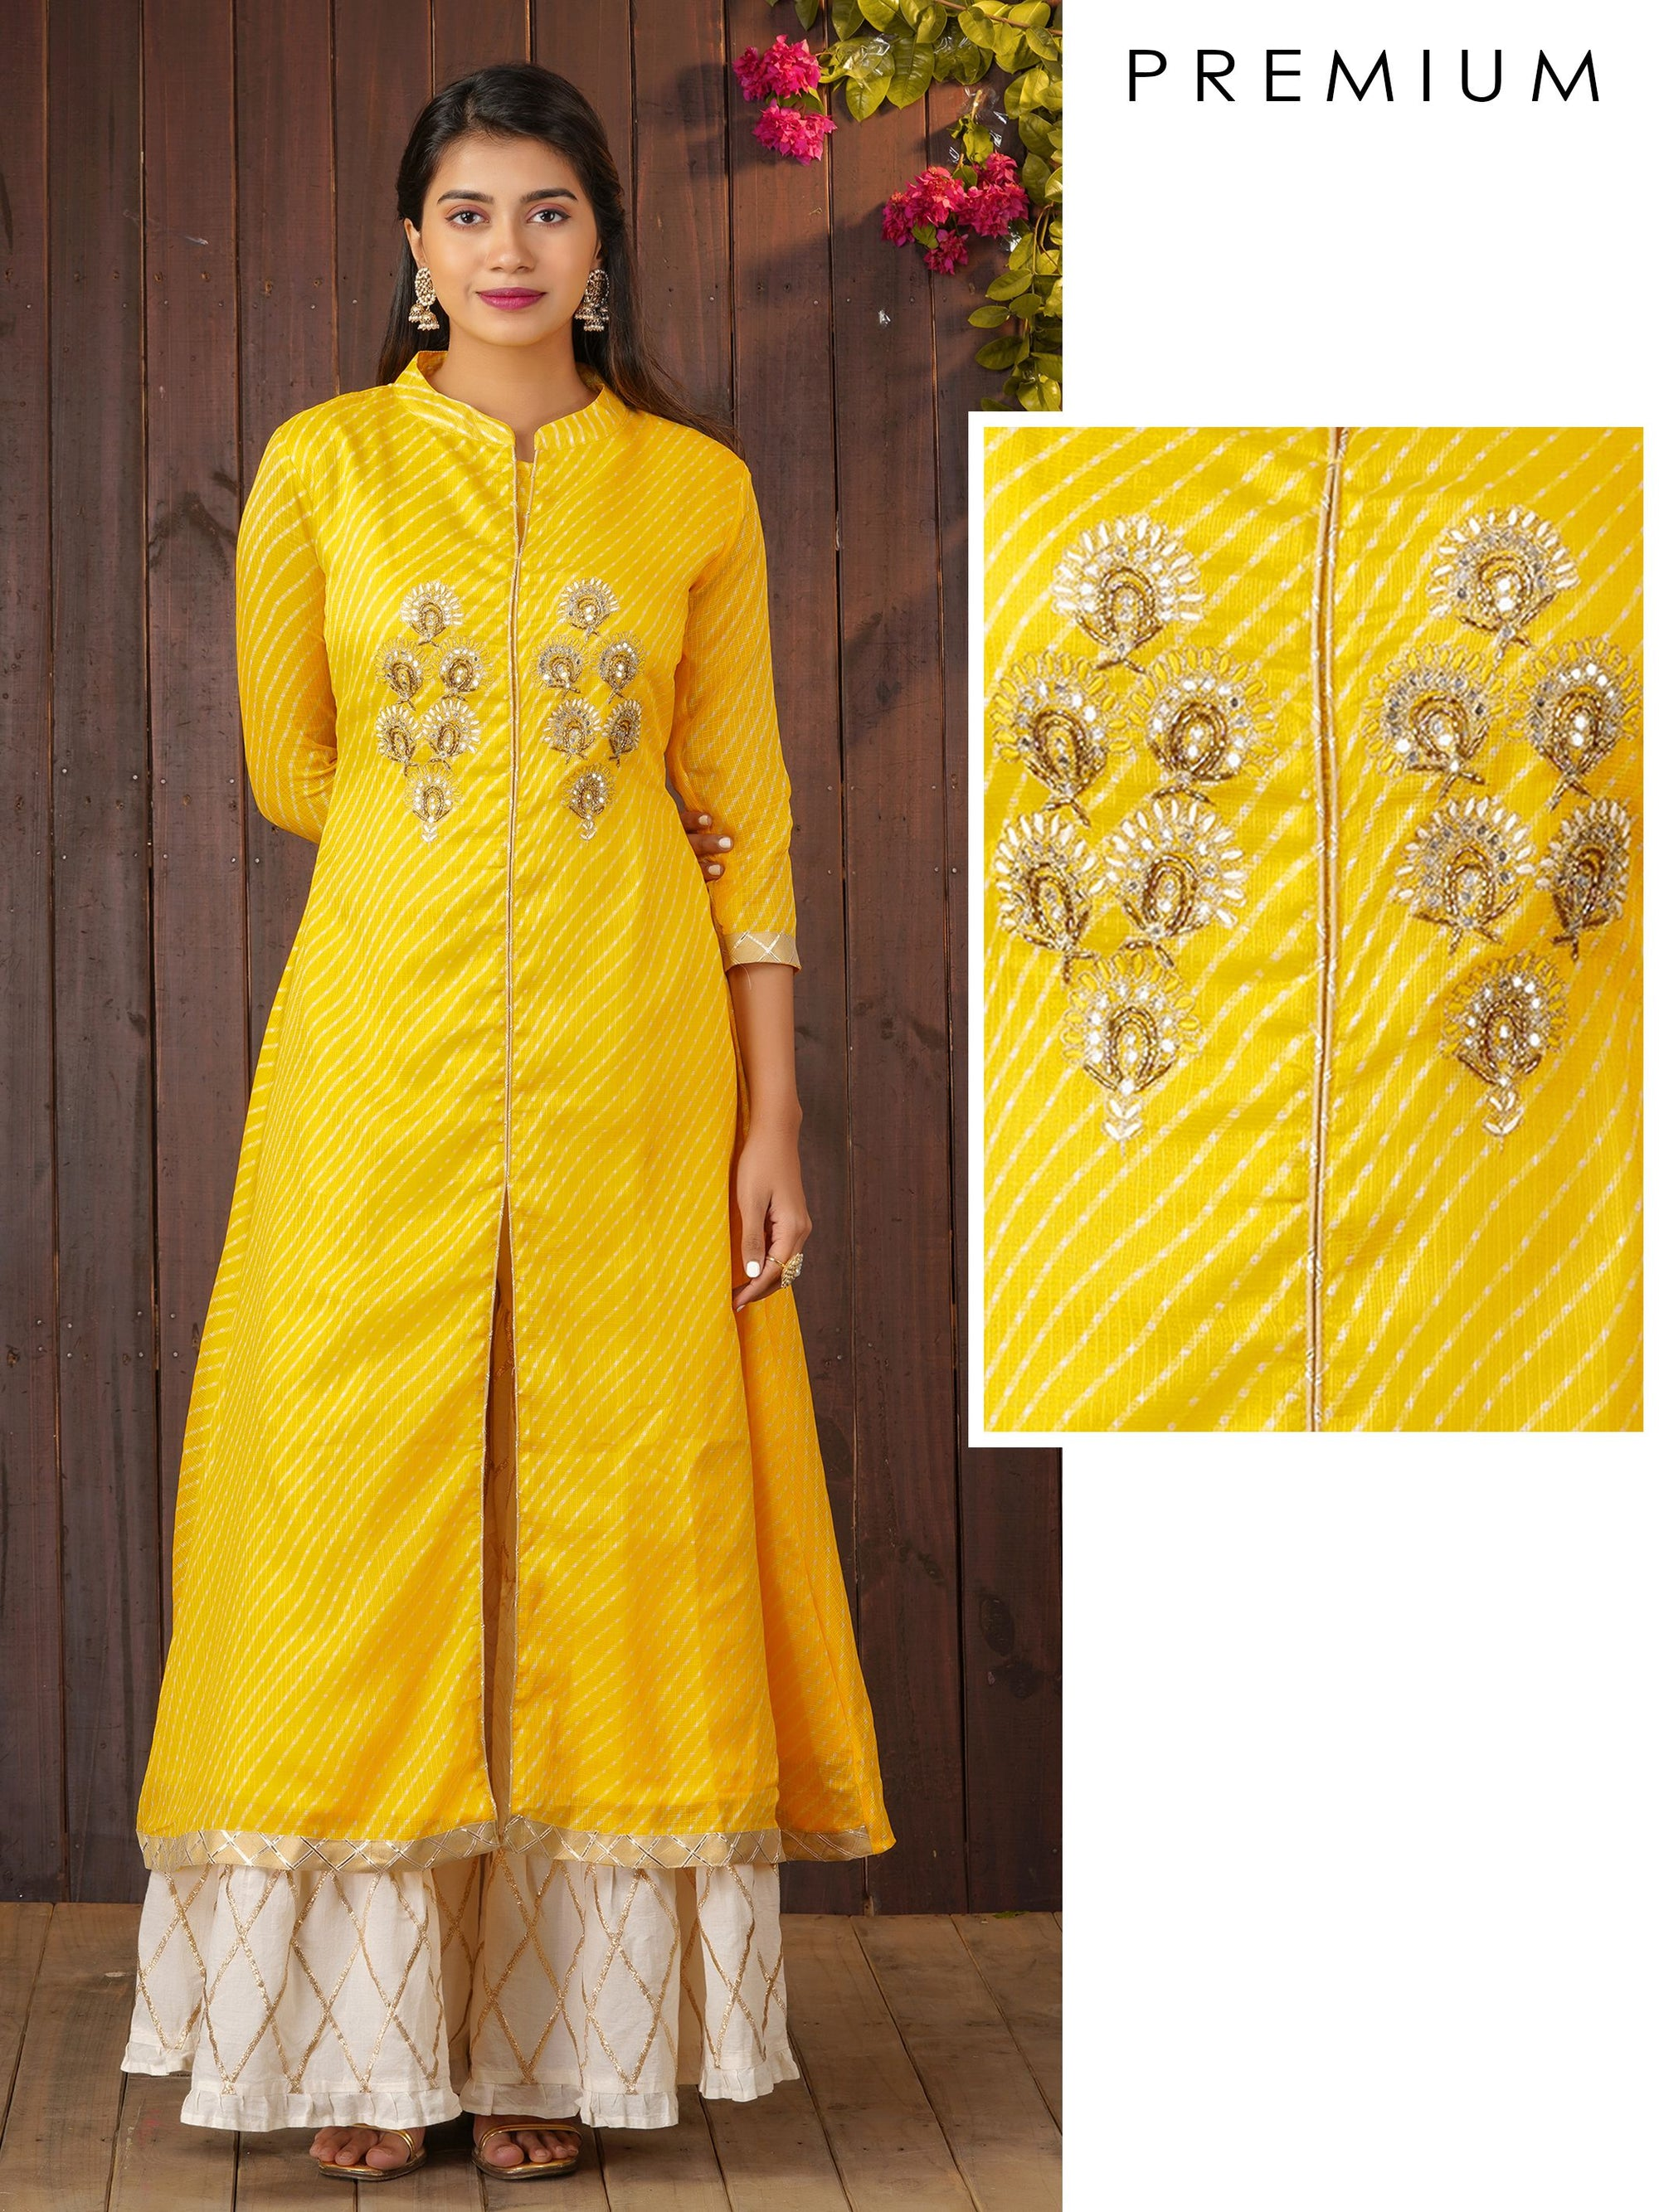 Leheriya A-line Kurta With Cutdana and Foil Mirror Work - Yellow